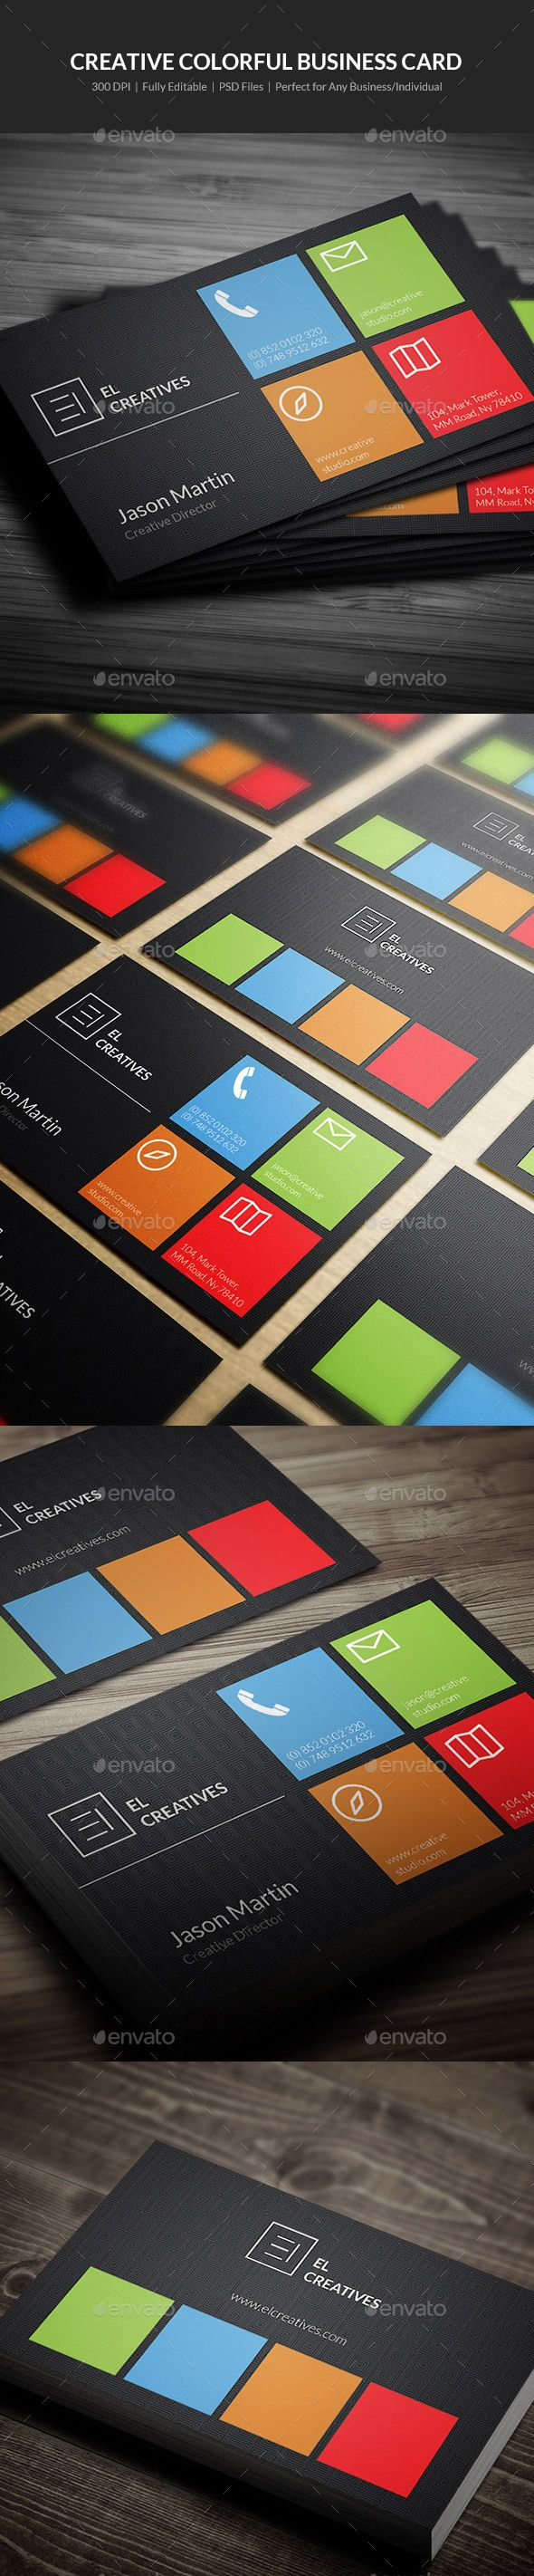 Creative Colorful Business Card   02